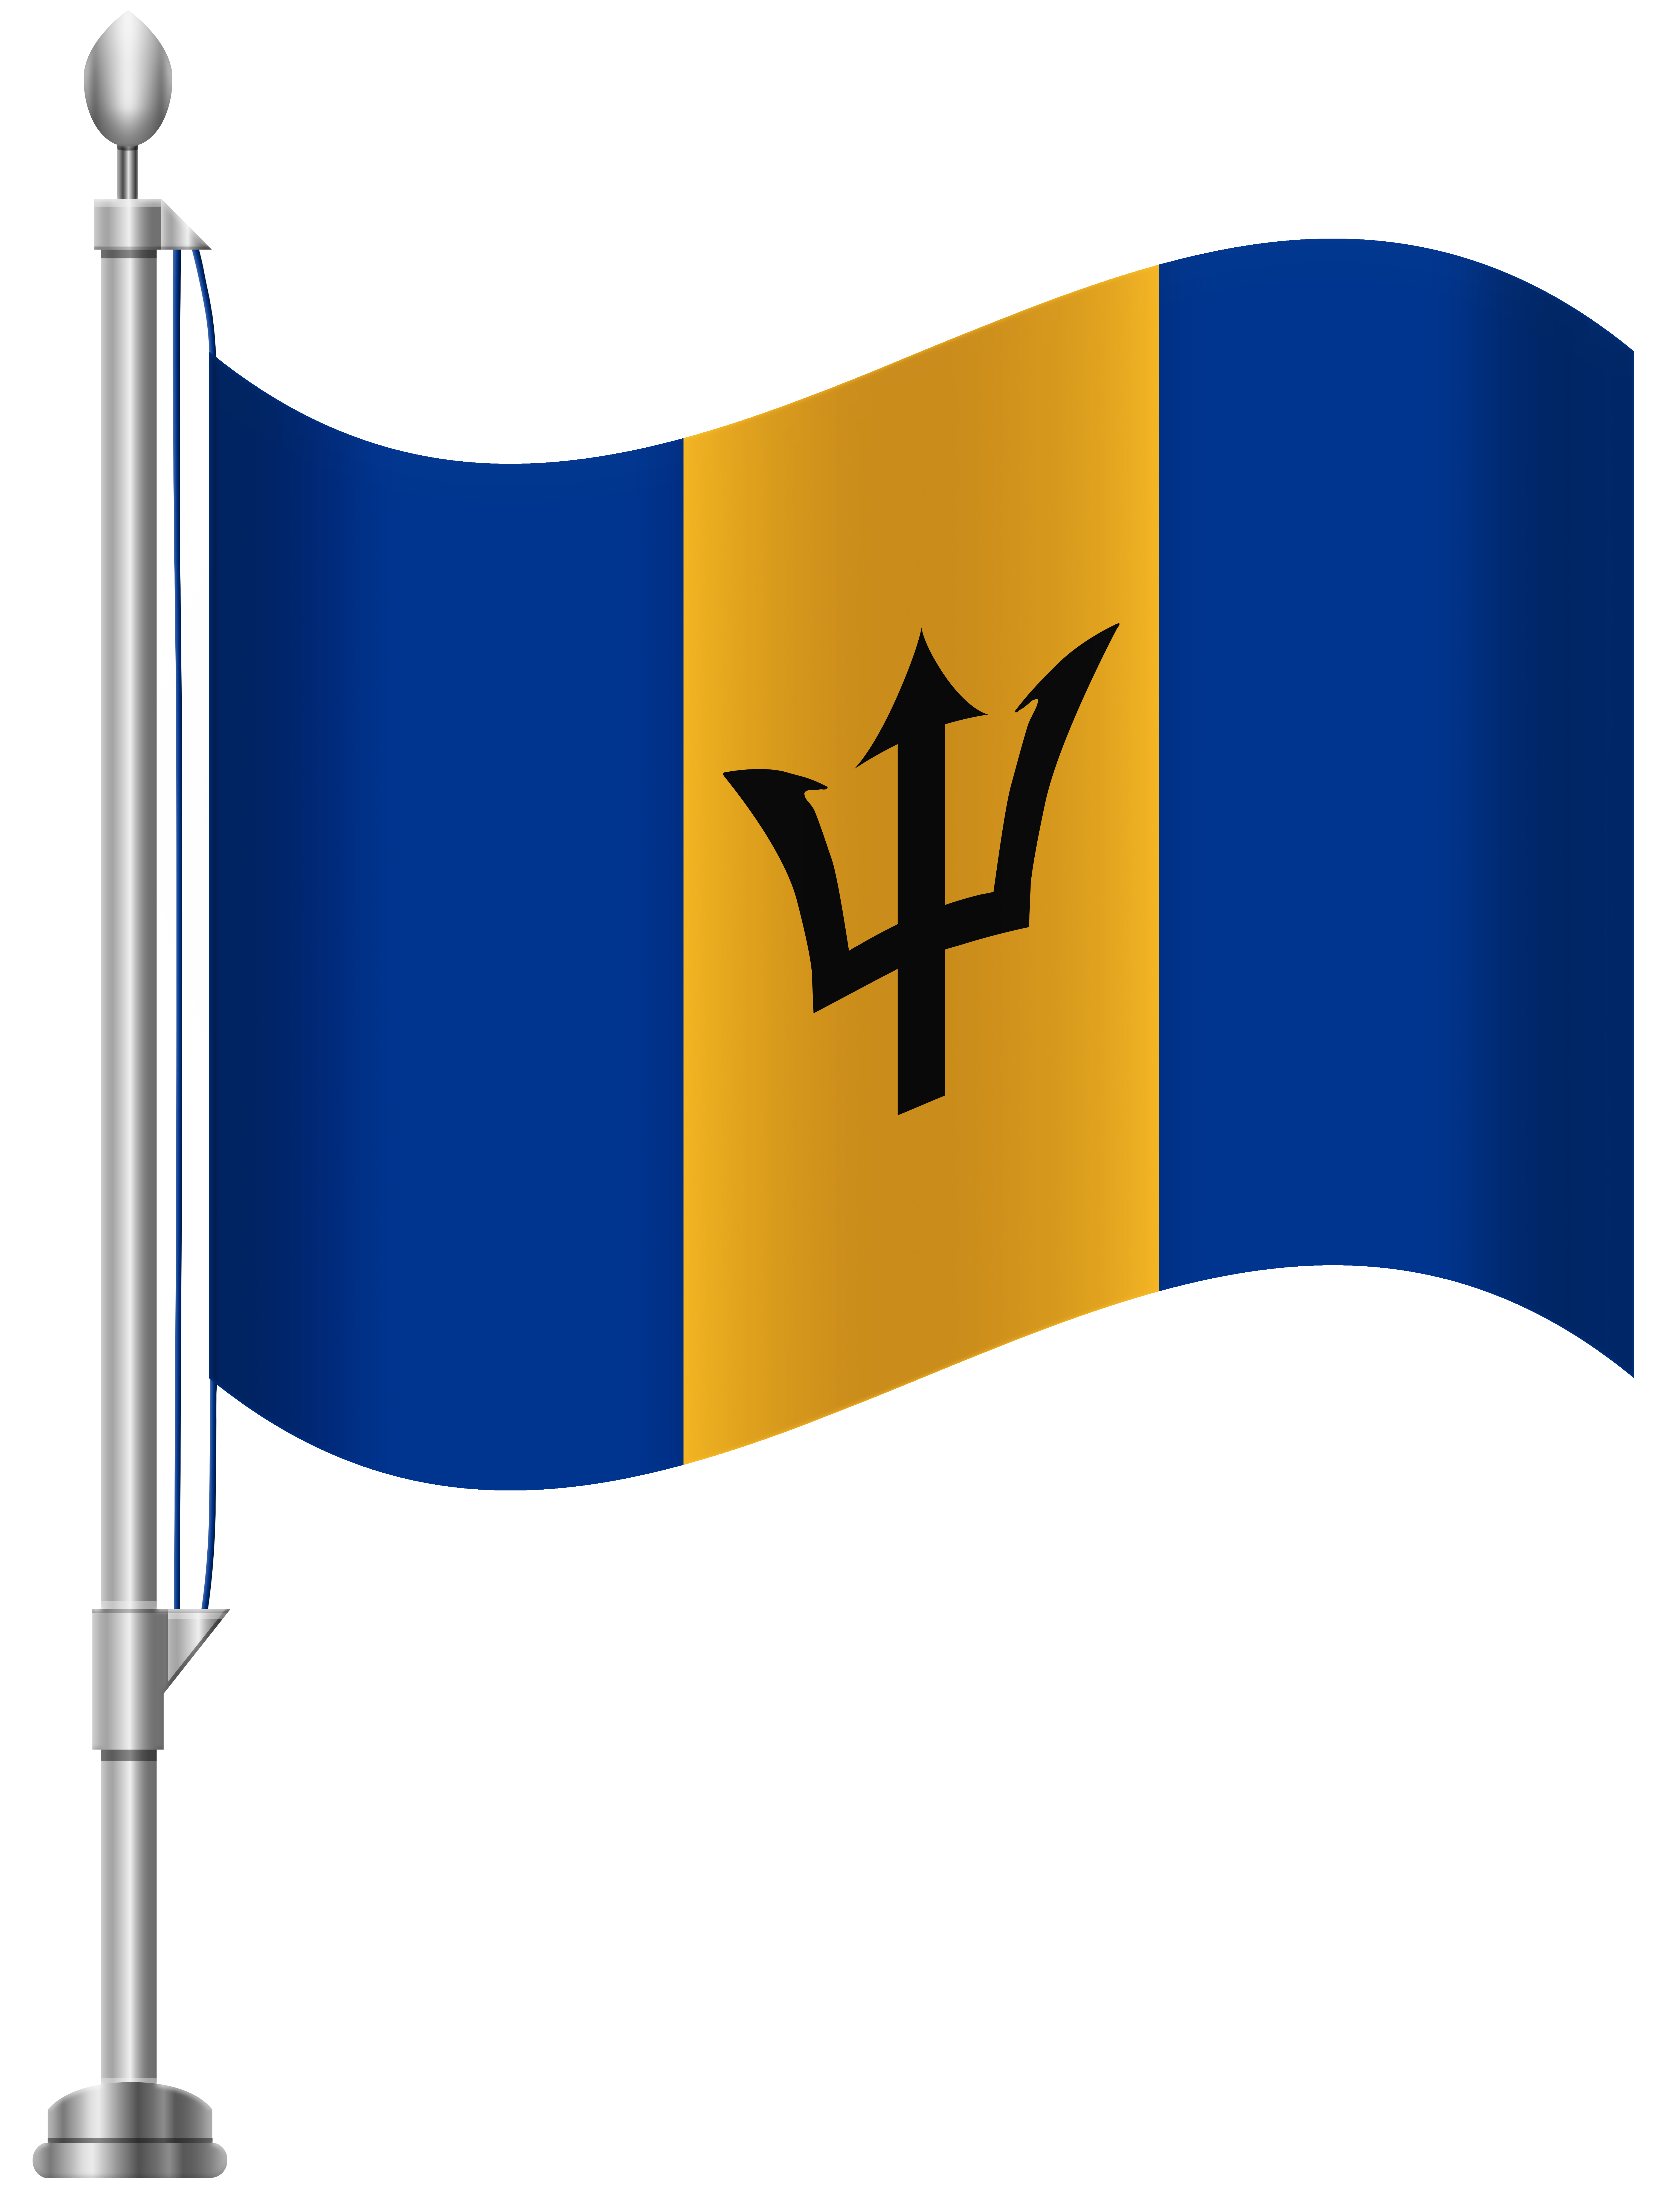 Barbados clipart #3, Download drawings